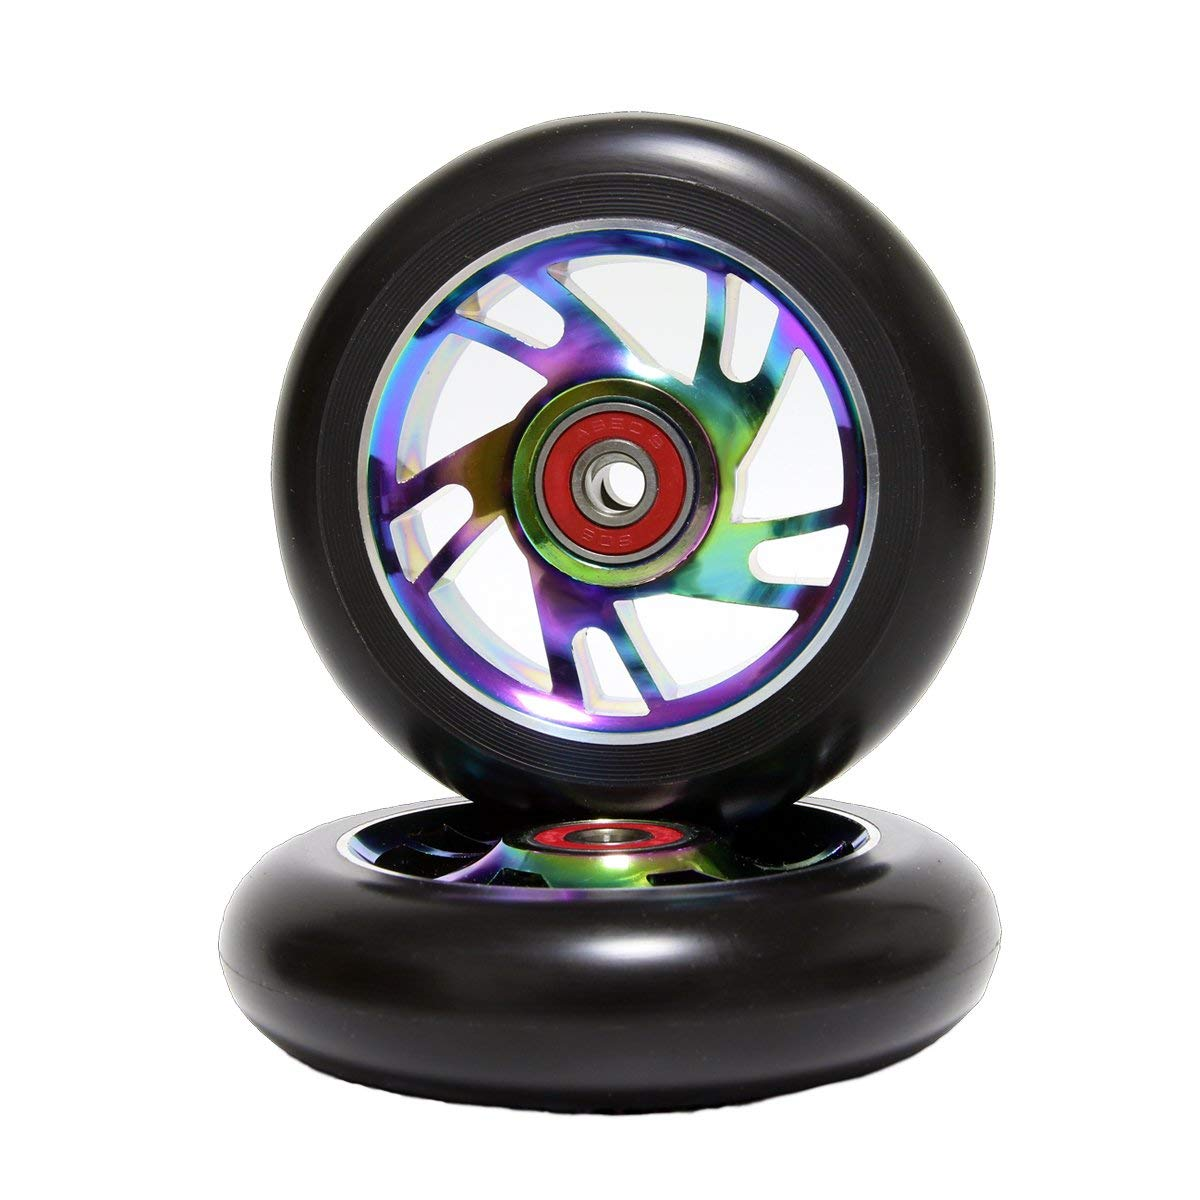 Z-FIRST 2cs Replacement 110mm Pro Scooter Wheel with ABEC 9 Bearings Fit for MGP/Razor/Lucky Pro Scooters Rainbow